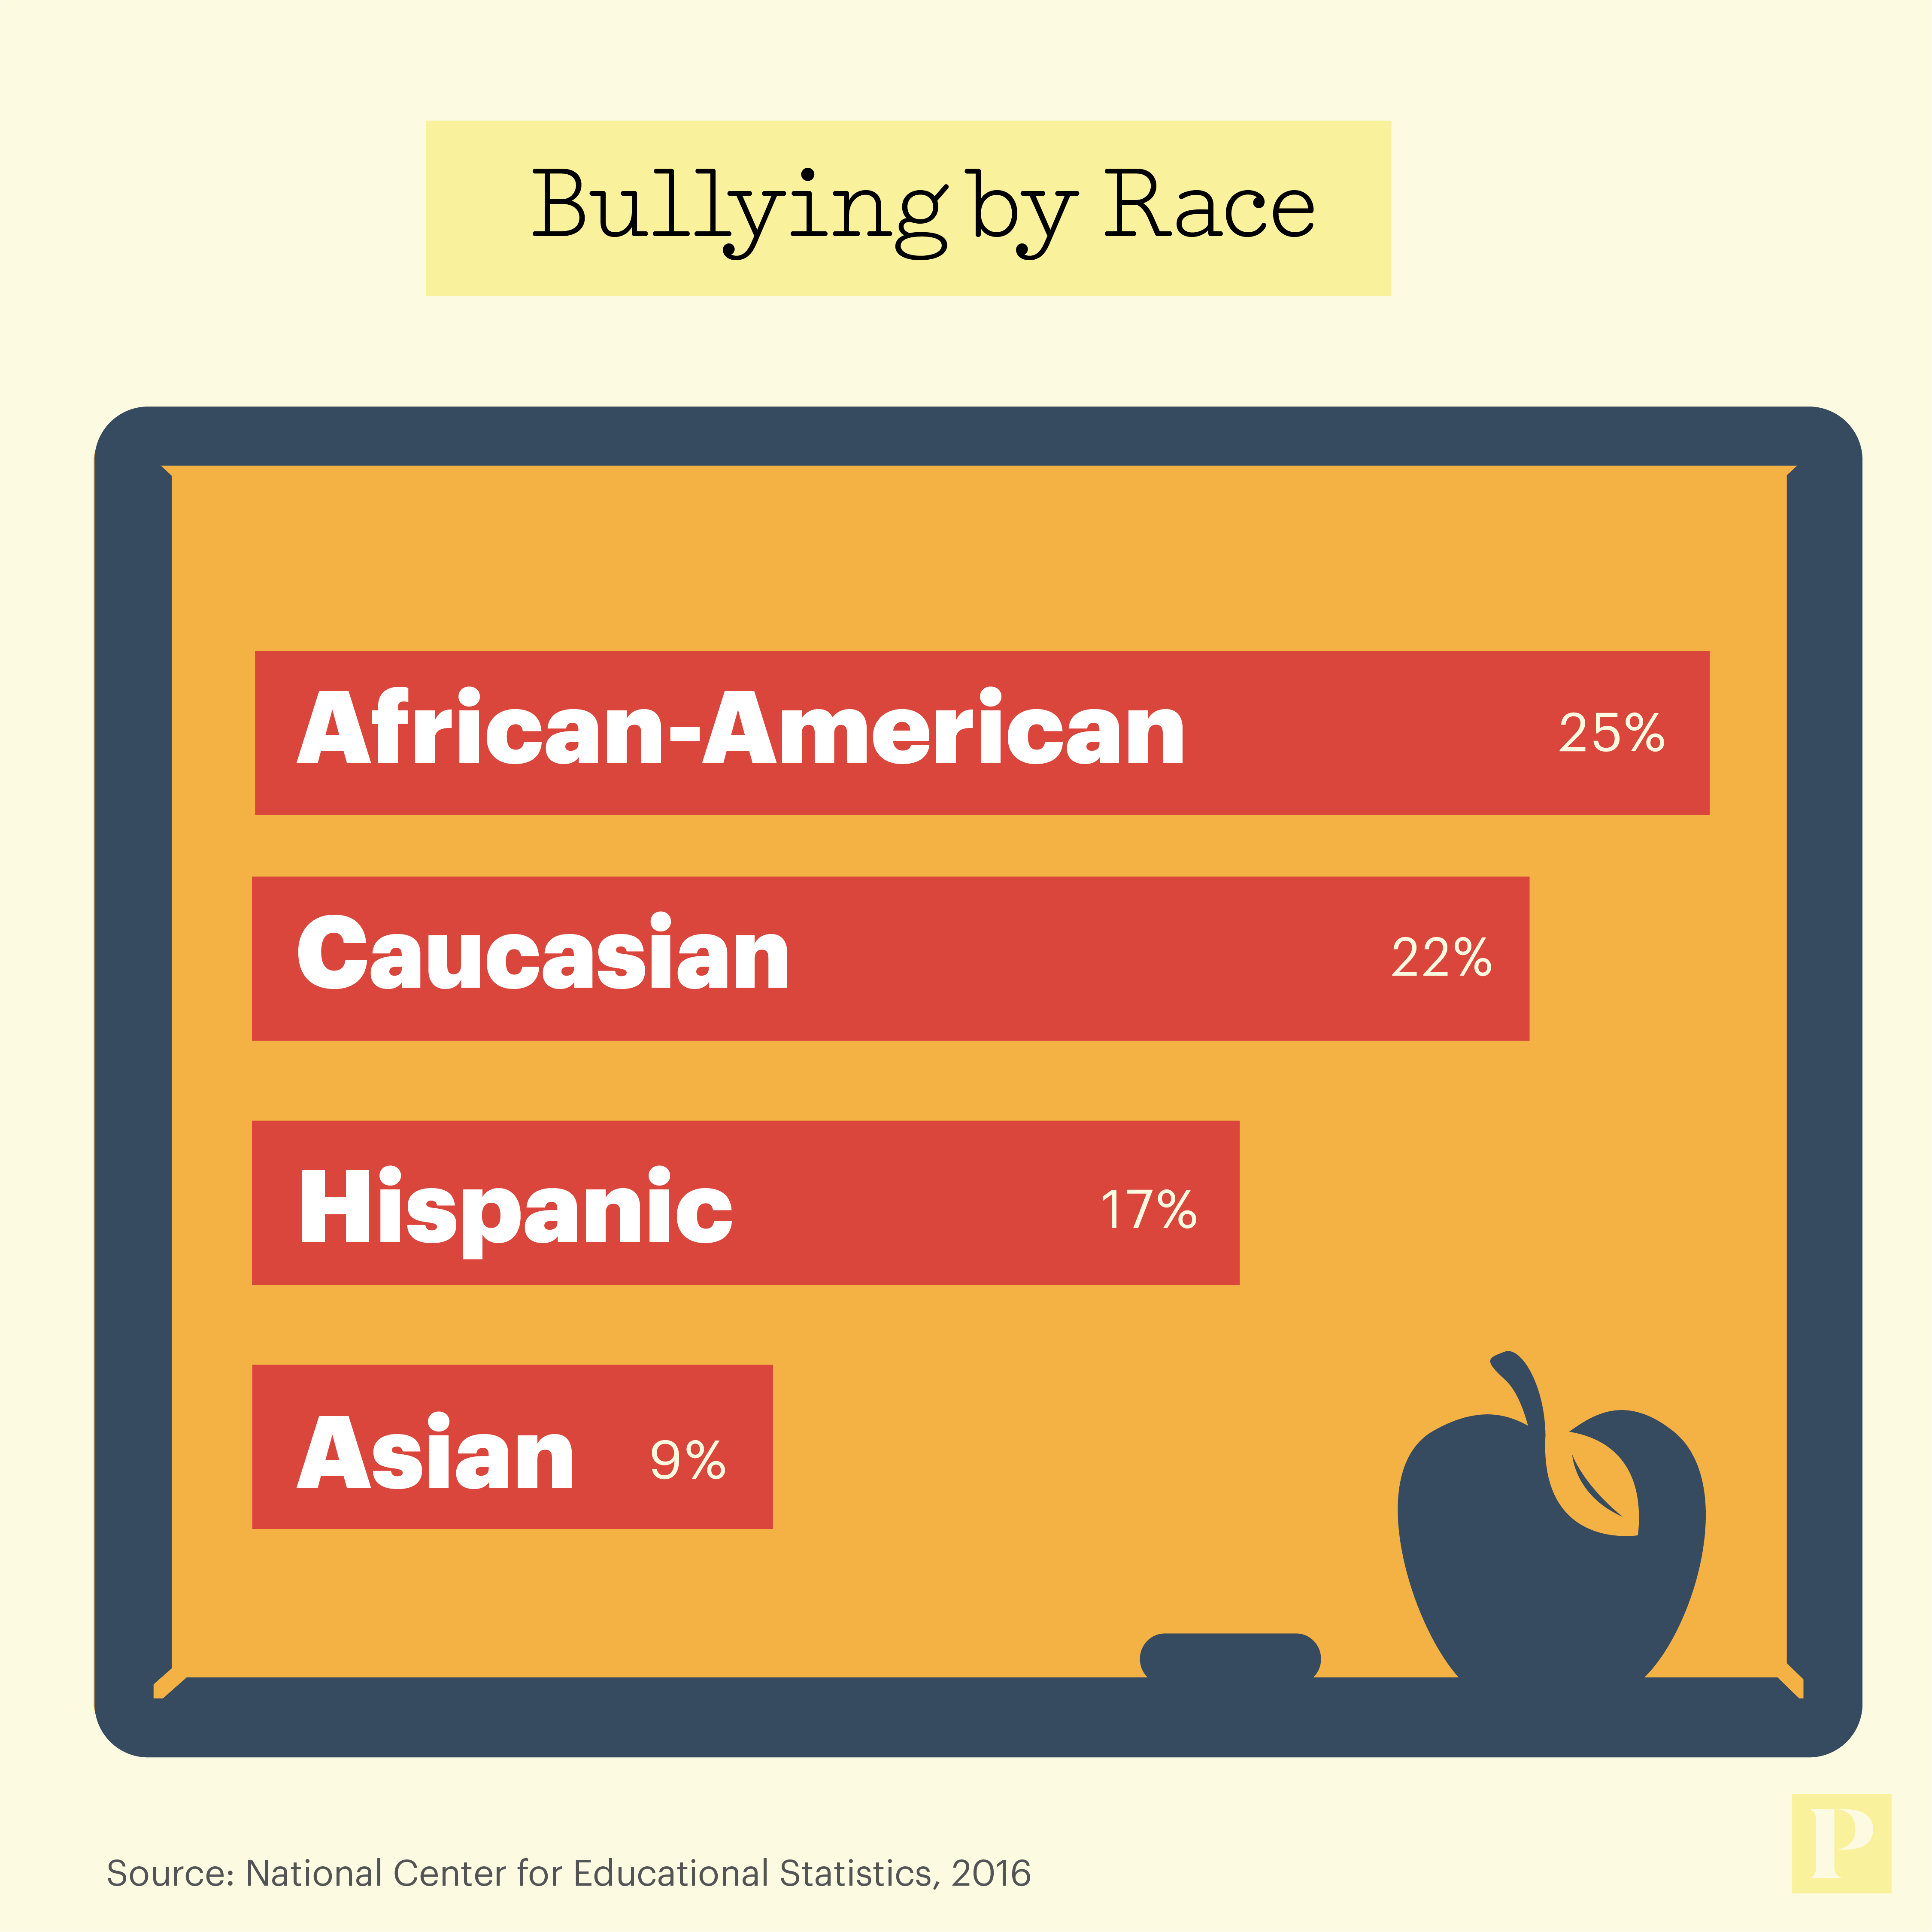 Bullying by Race